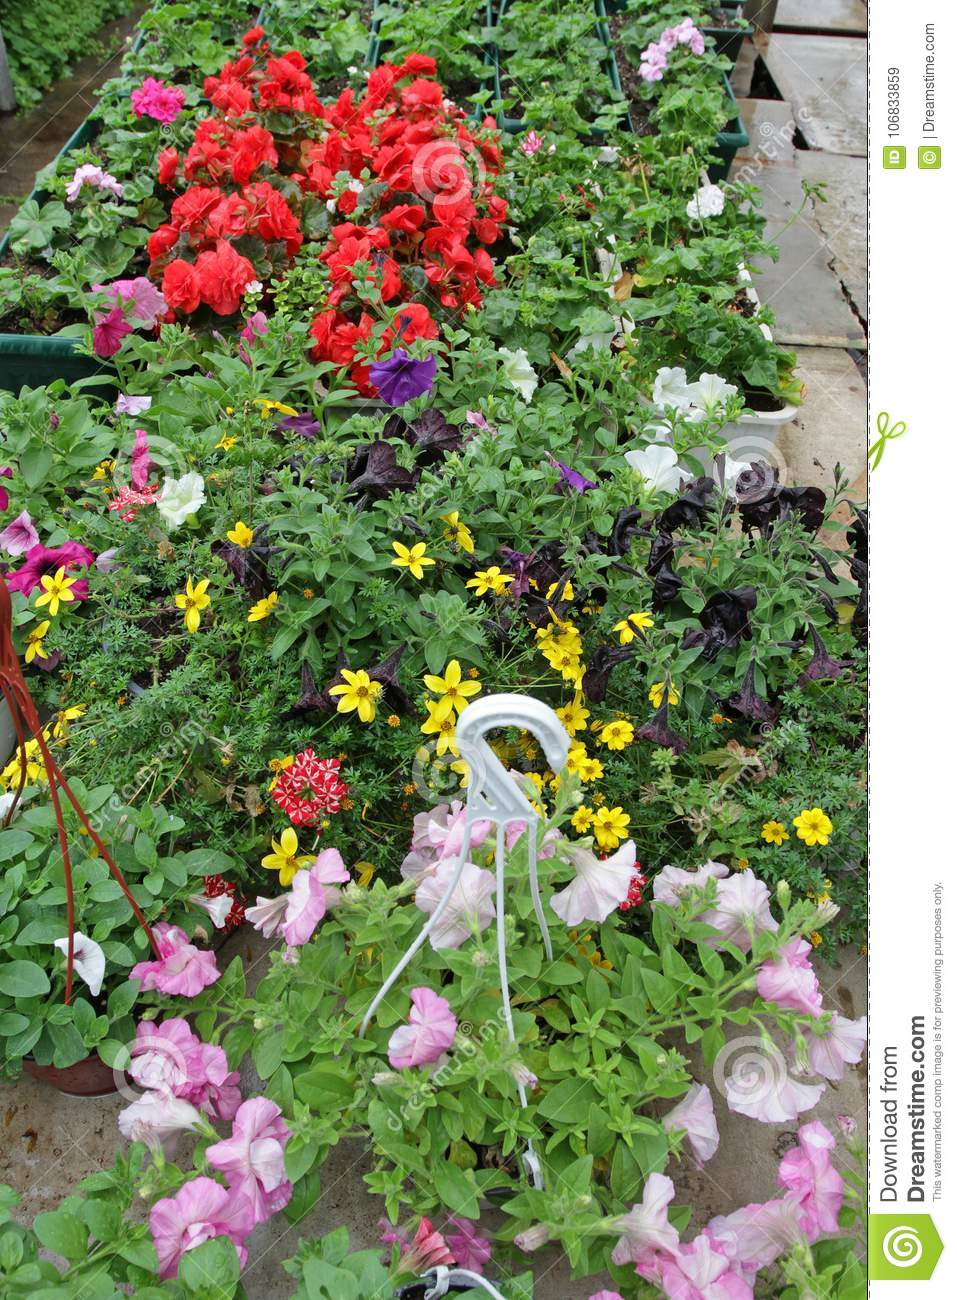 Colored Petunia Field With Hanging Pots. Stimoryne. Field Of Purple ...